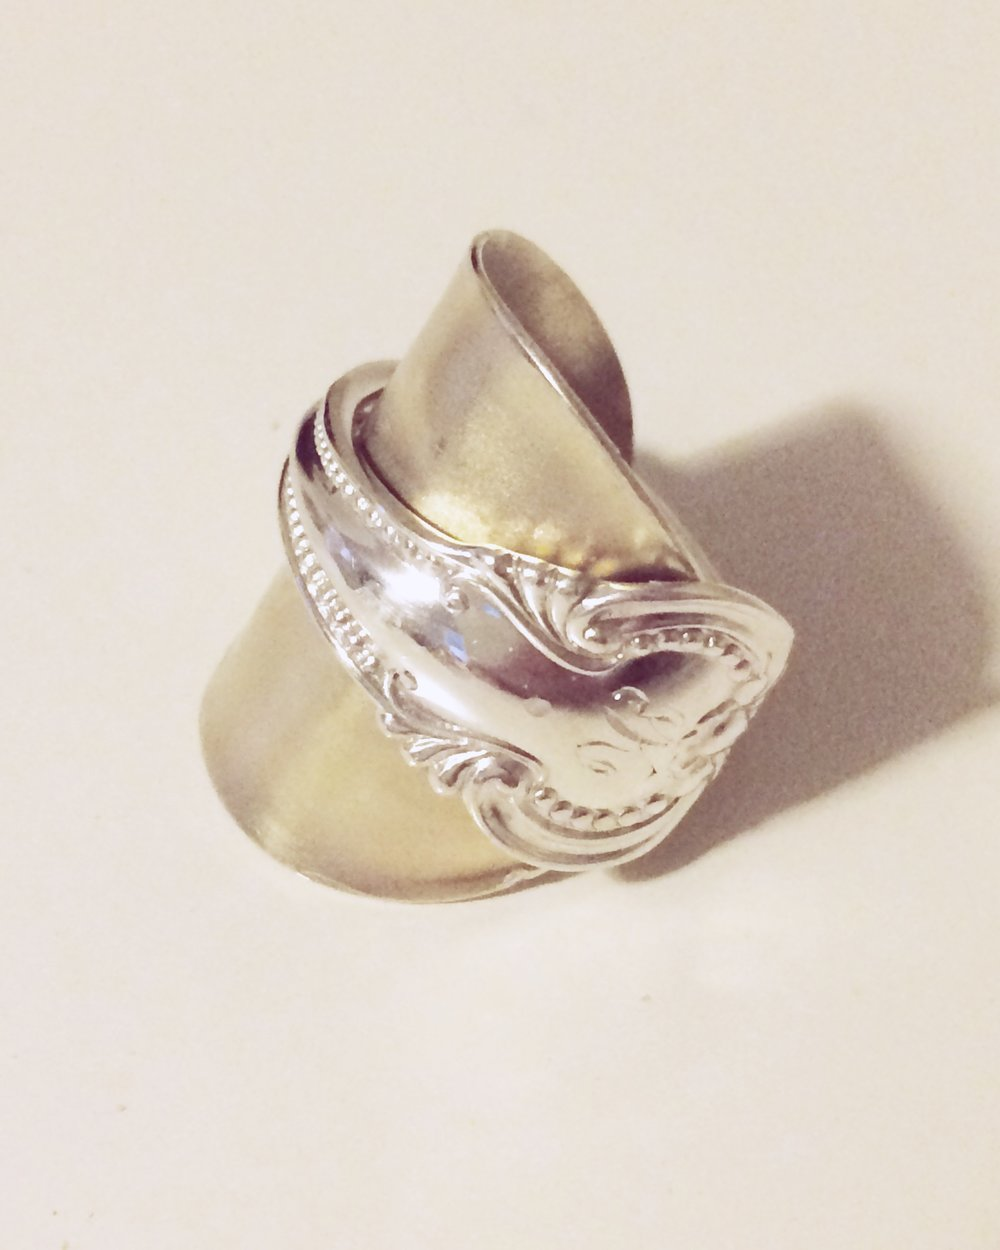 Sterling Silver Spoon Ring made for the A Forager's Home Shop by jeweller Katelyn Lane.